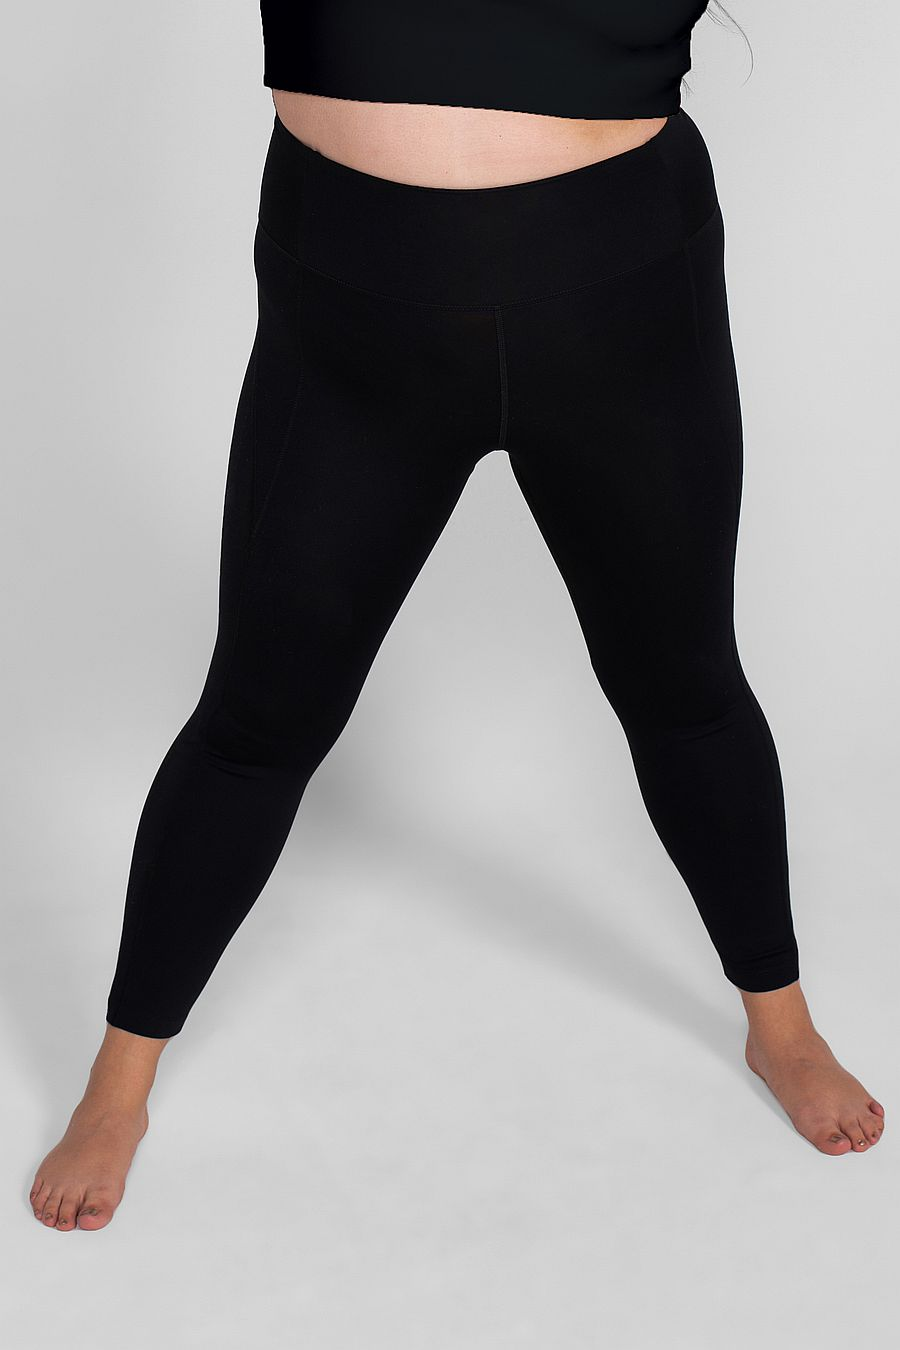 "Girlfriend Collective Black Compressive Legging (28.5"")"